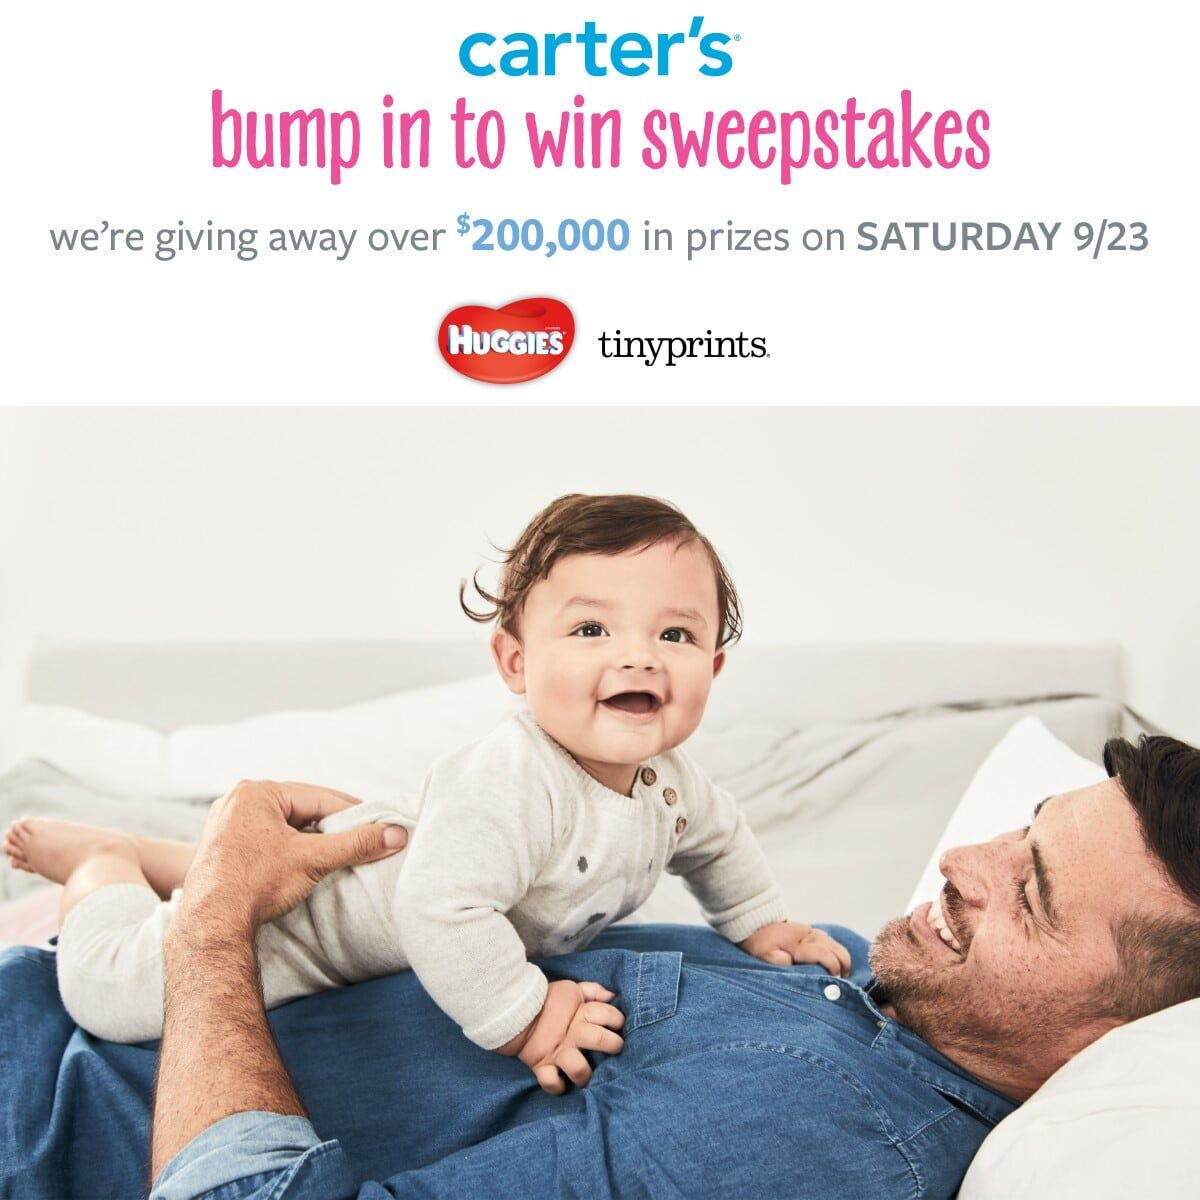 Sweepstakes for baby items